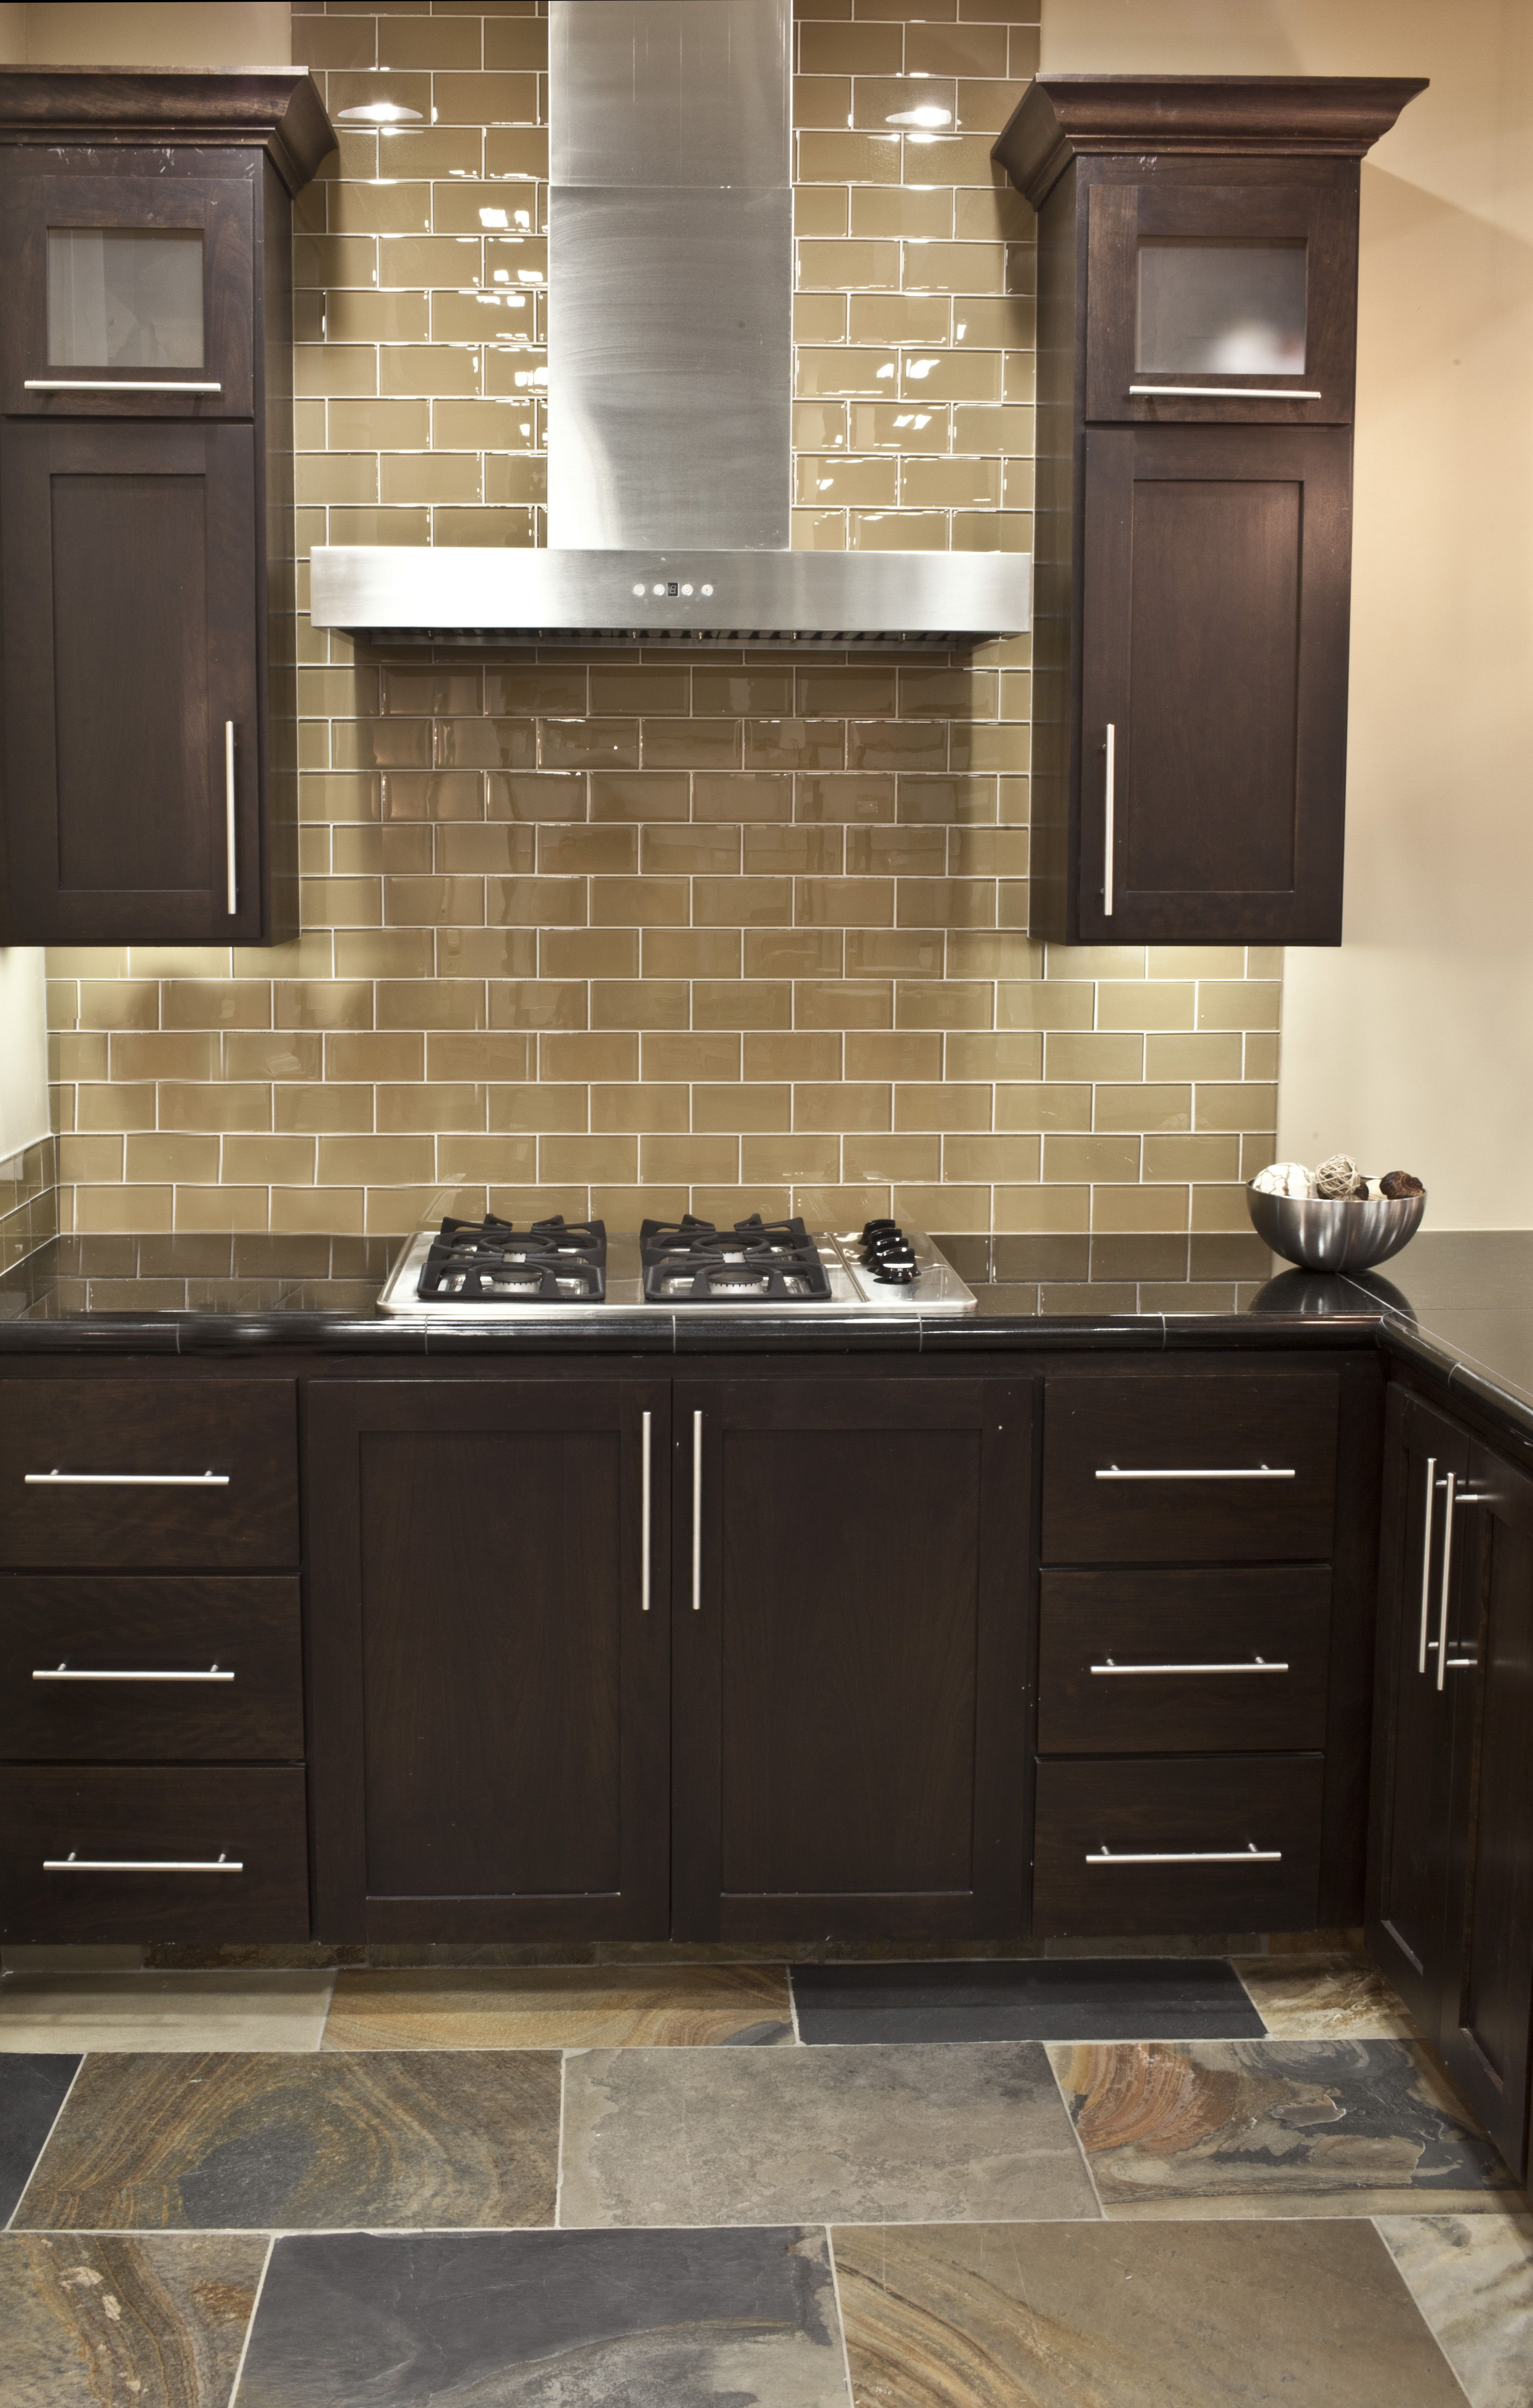 kitchen backsplash glass tile dark cabinets. **TILE IDEA**Champagne Glass Subway Tile Backsplash...Found At Http://www.subwaytileoutlet.com/ Kitchen Backsplash Dark Cabinets B